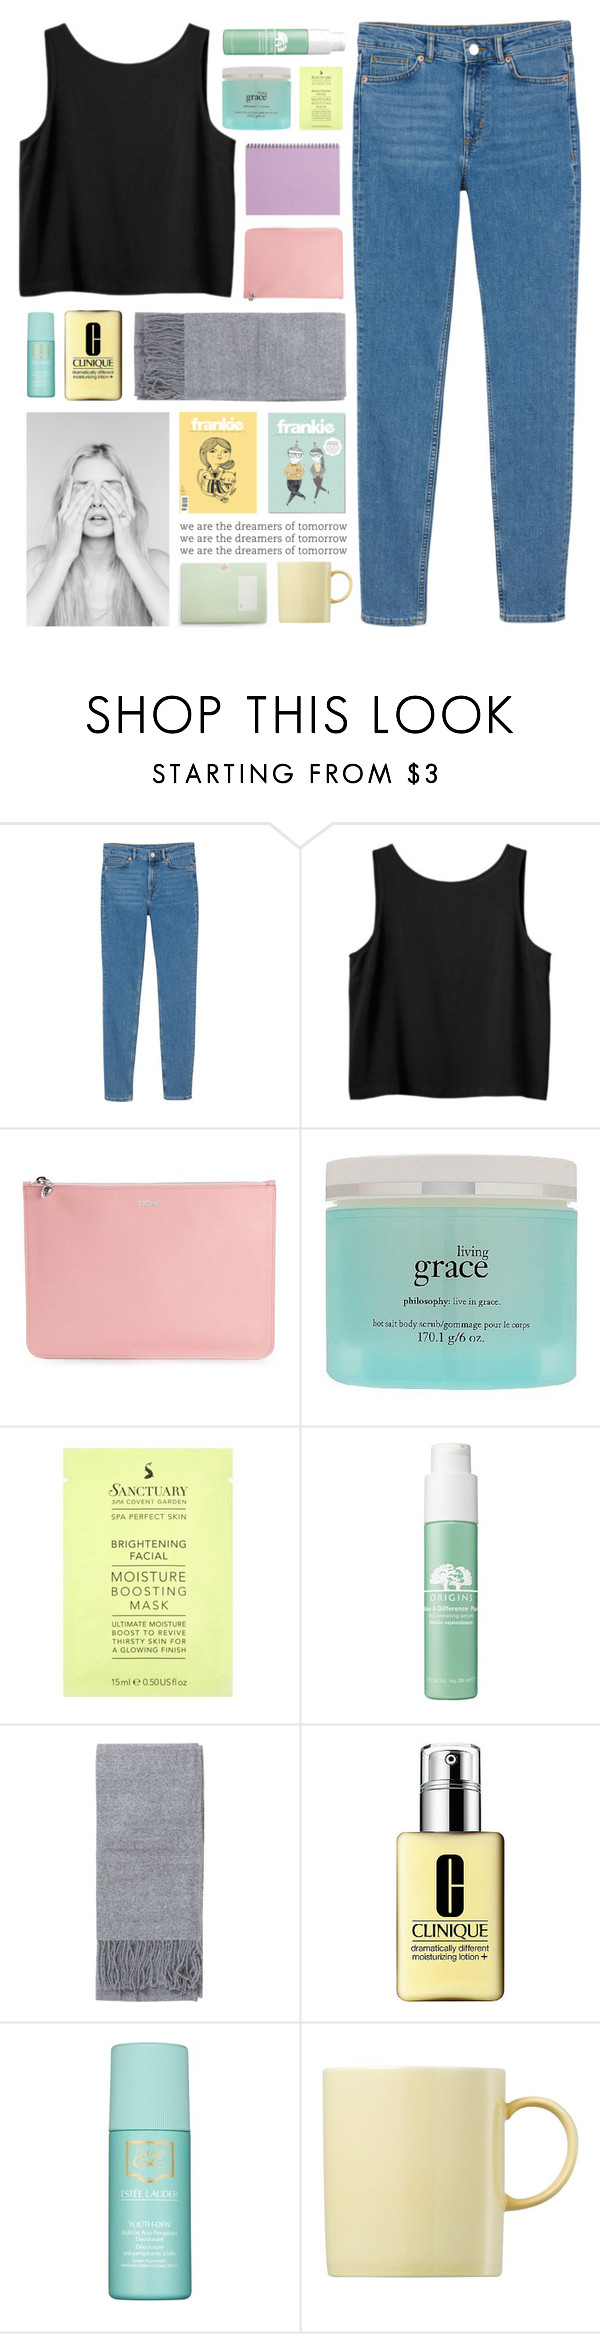 """what would i do without you..."" by cinnamon-and-cocoa ❤ liked on Polyvore featuring Monki, Alexander McQueen, philosophy, Origins, Topshop, Clinique, Estée Lauder and Rosenthal"